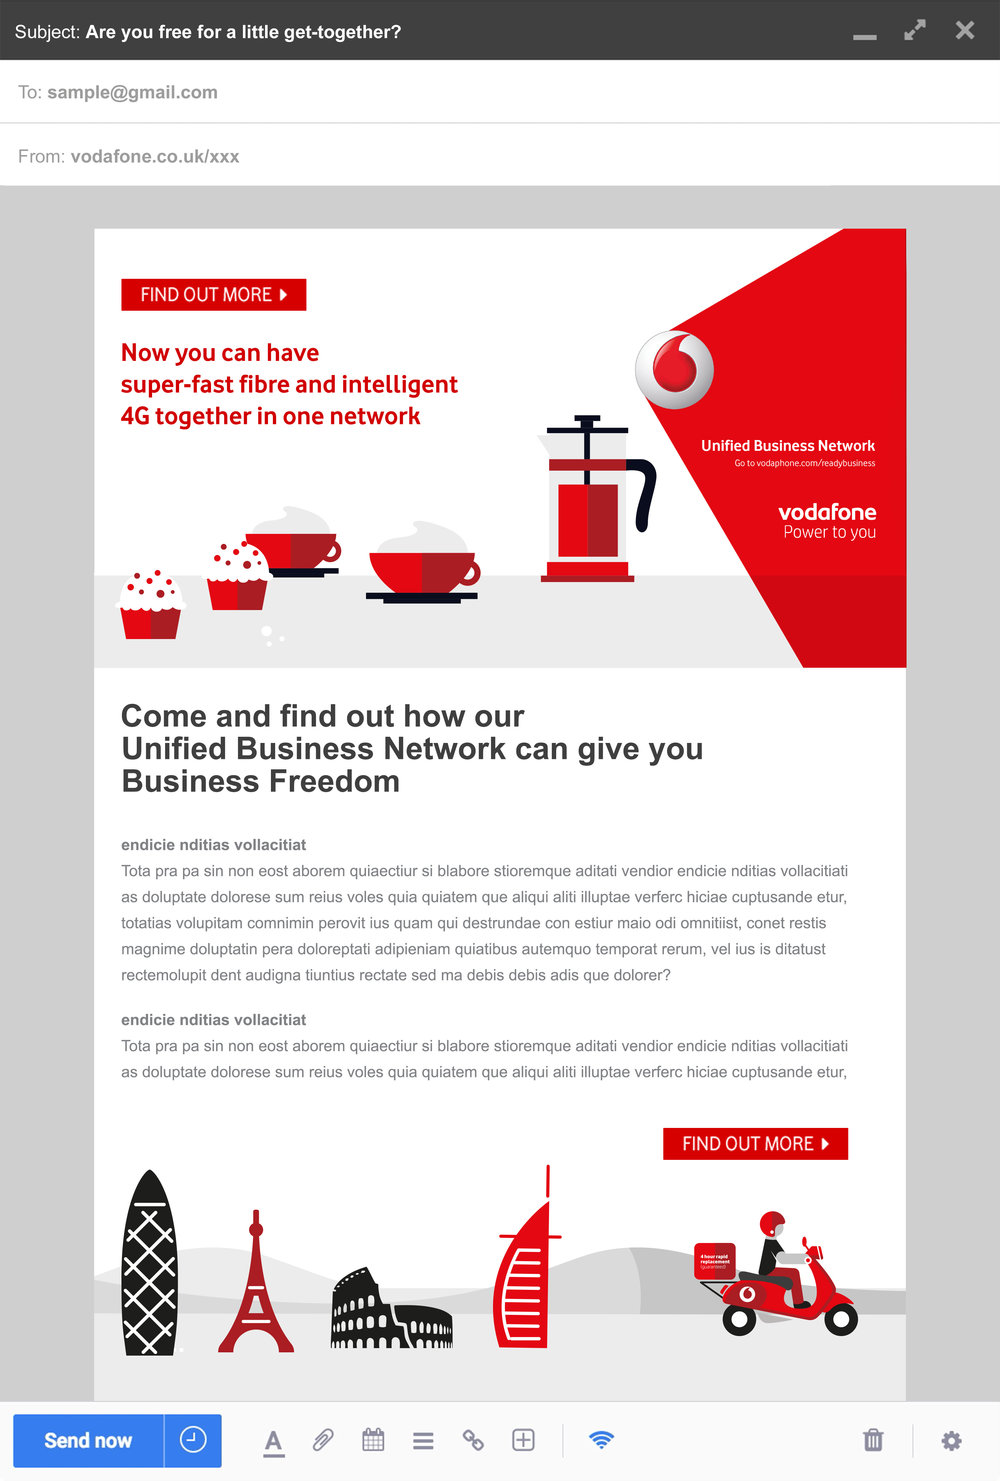 vodafone email template_get together.jpg